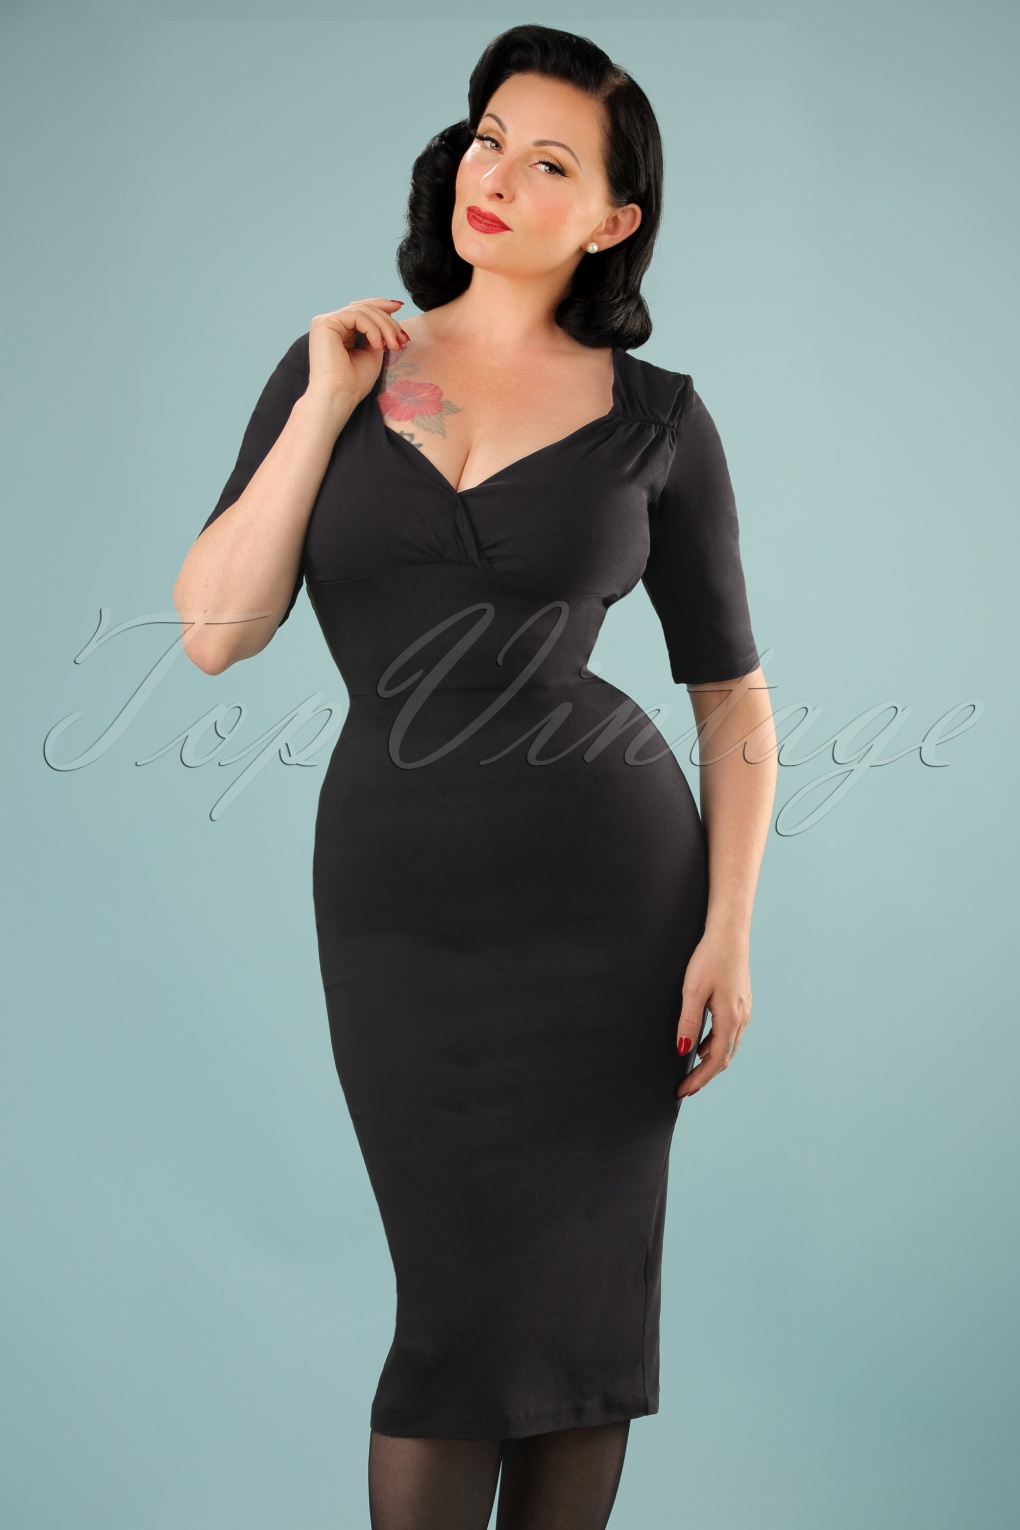 1950s Dresses, 50s Dresses | 1950s Style Dresses 50s Trixie Doll Pencil Dress in Black £48.48 AT vintagedancer.com